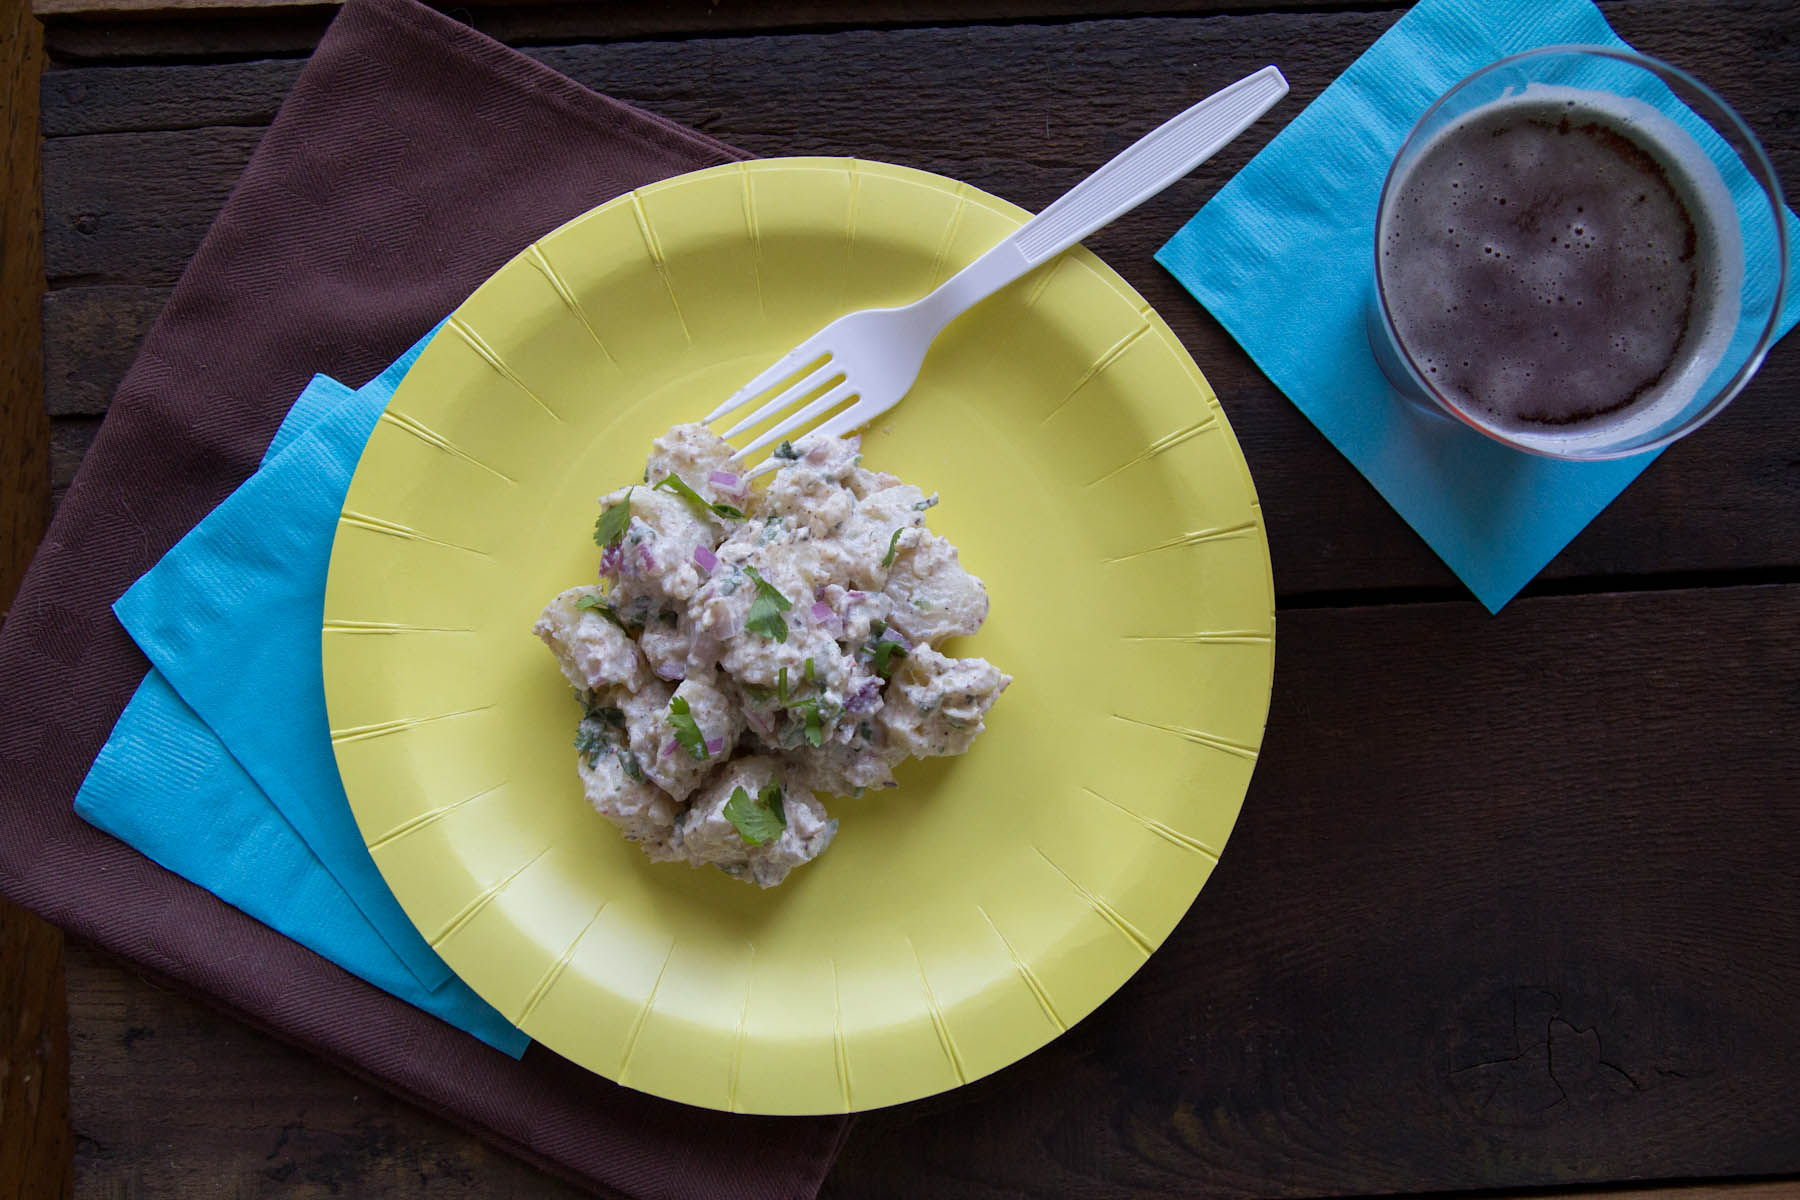 Healthy picnic food indian style cumin ginger potato salad indian style cumin ginger potato salad by indiaphilefo forumfinder Gallery